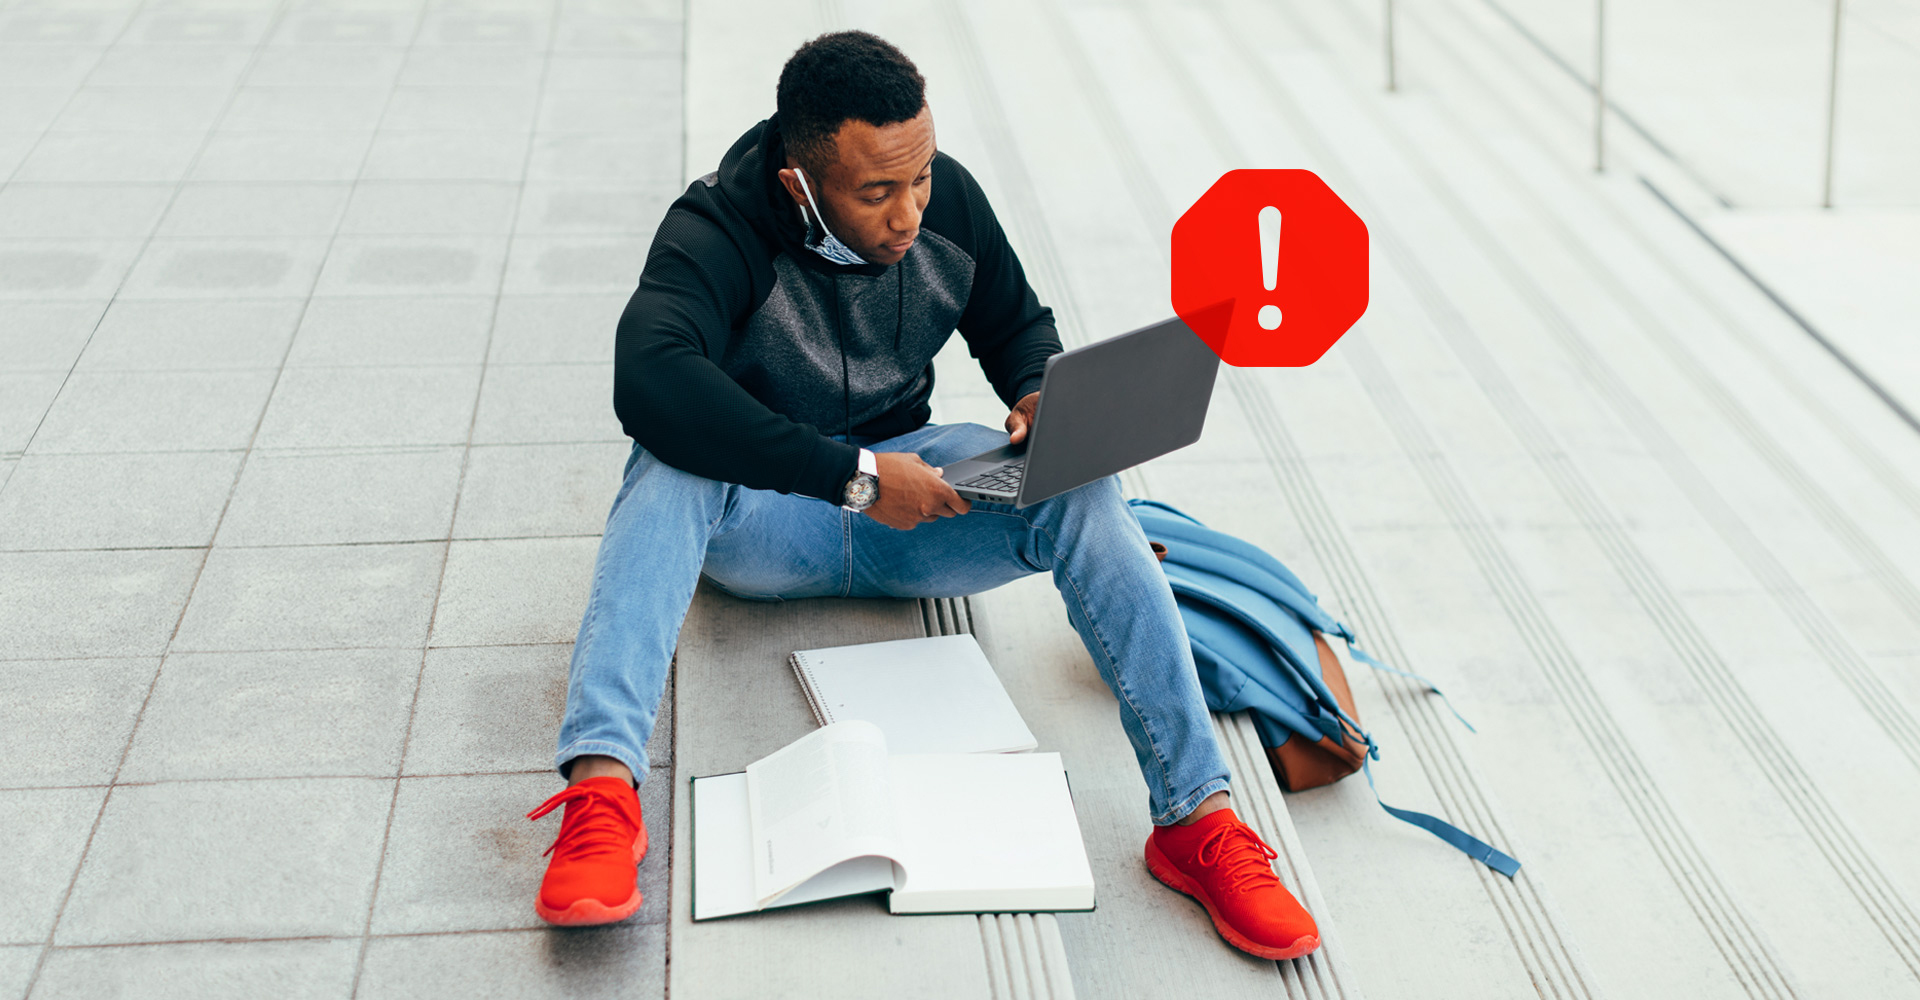 Warning Signs Of Student Loan Scams | Avast